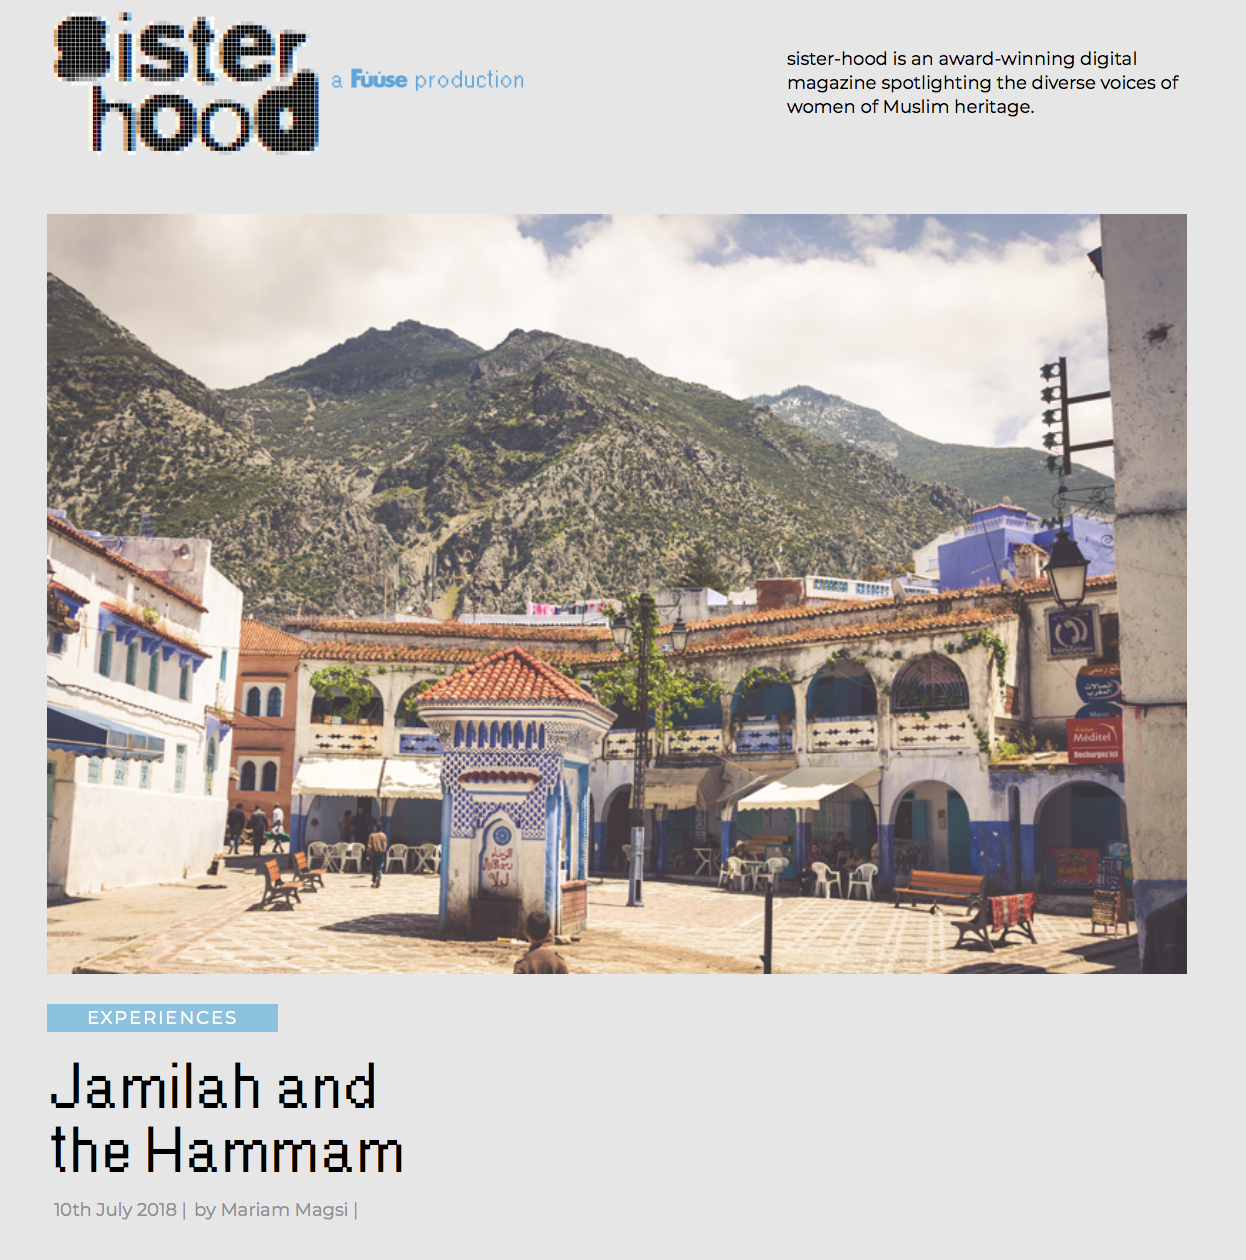 Jamilah and the Hammam